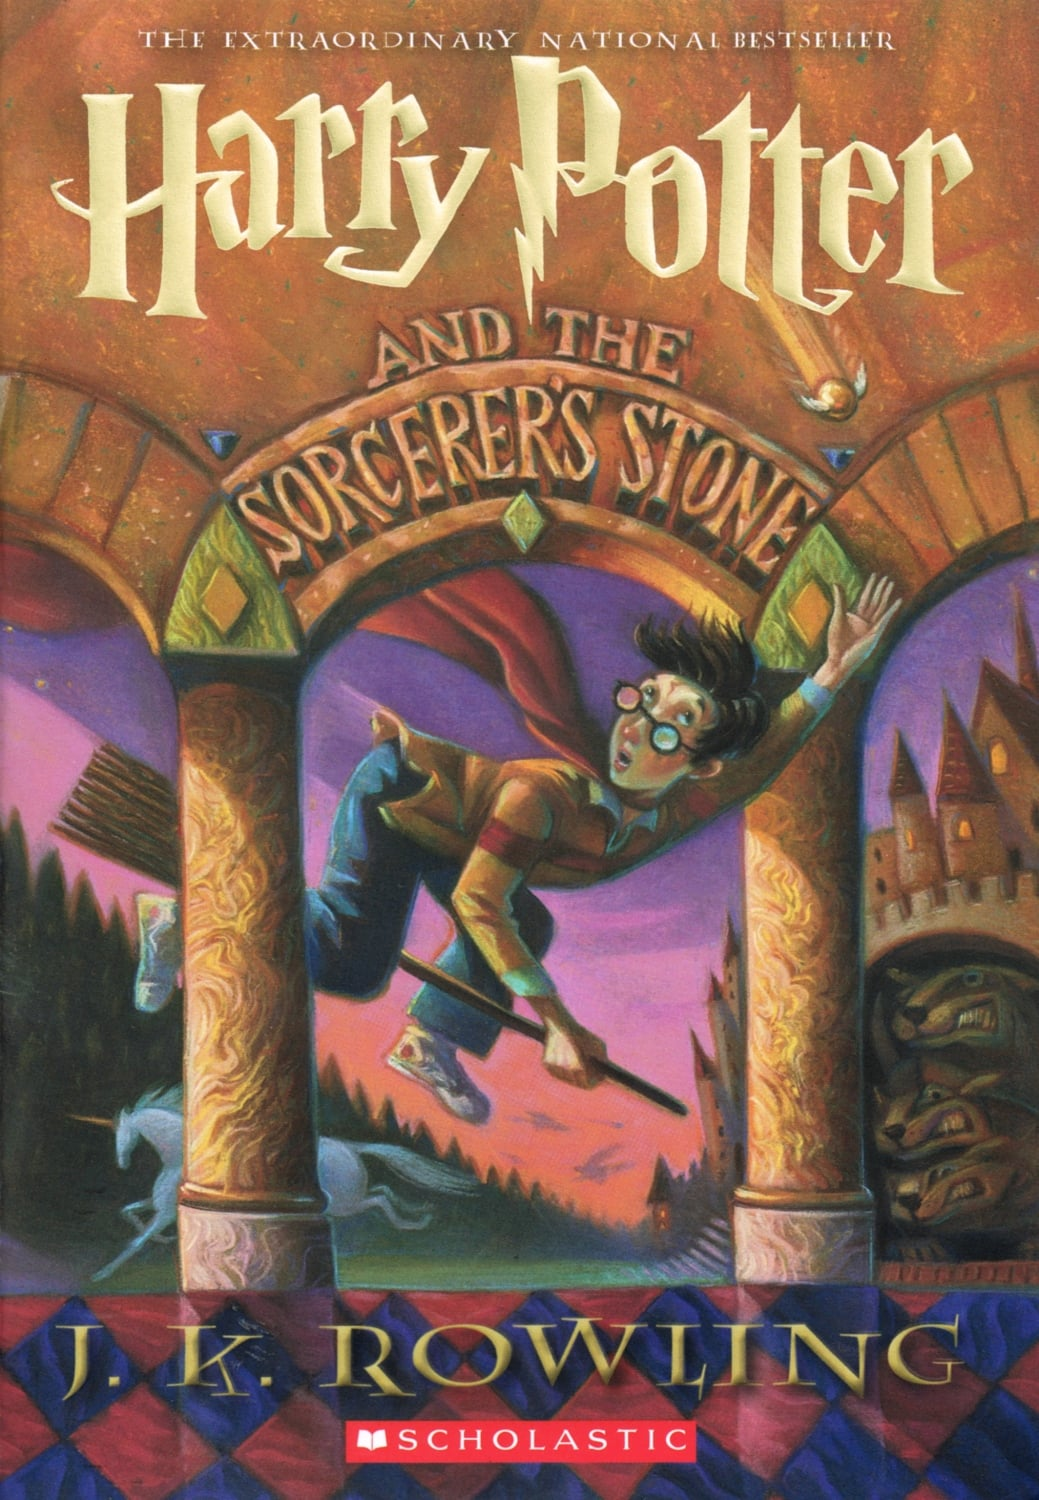 Harry Potter and the Sorcerer's Stone, USA